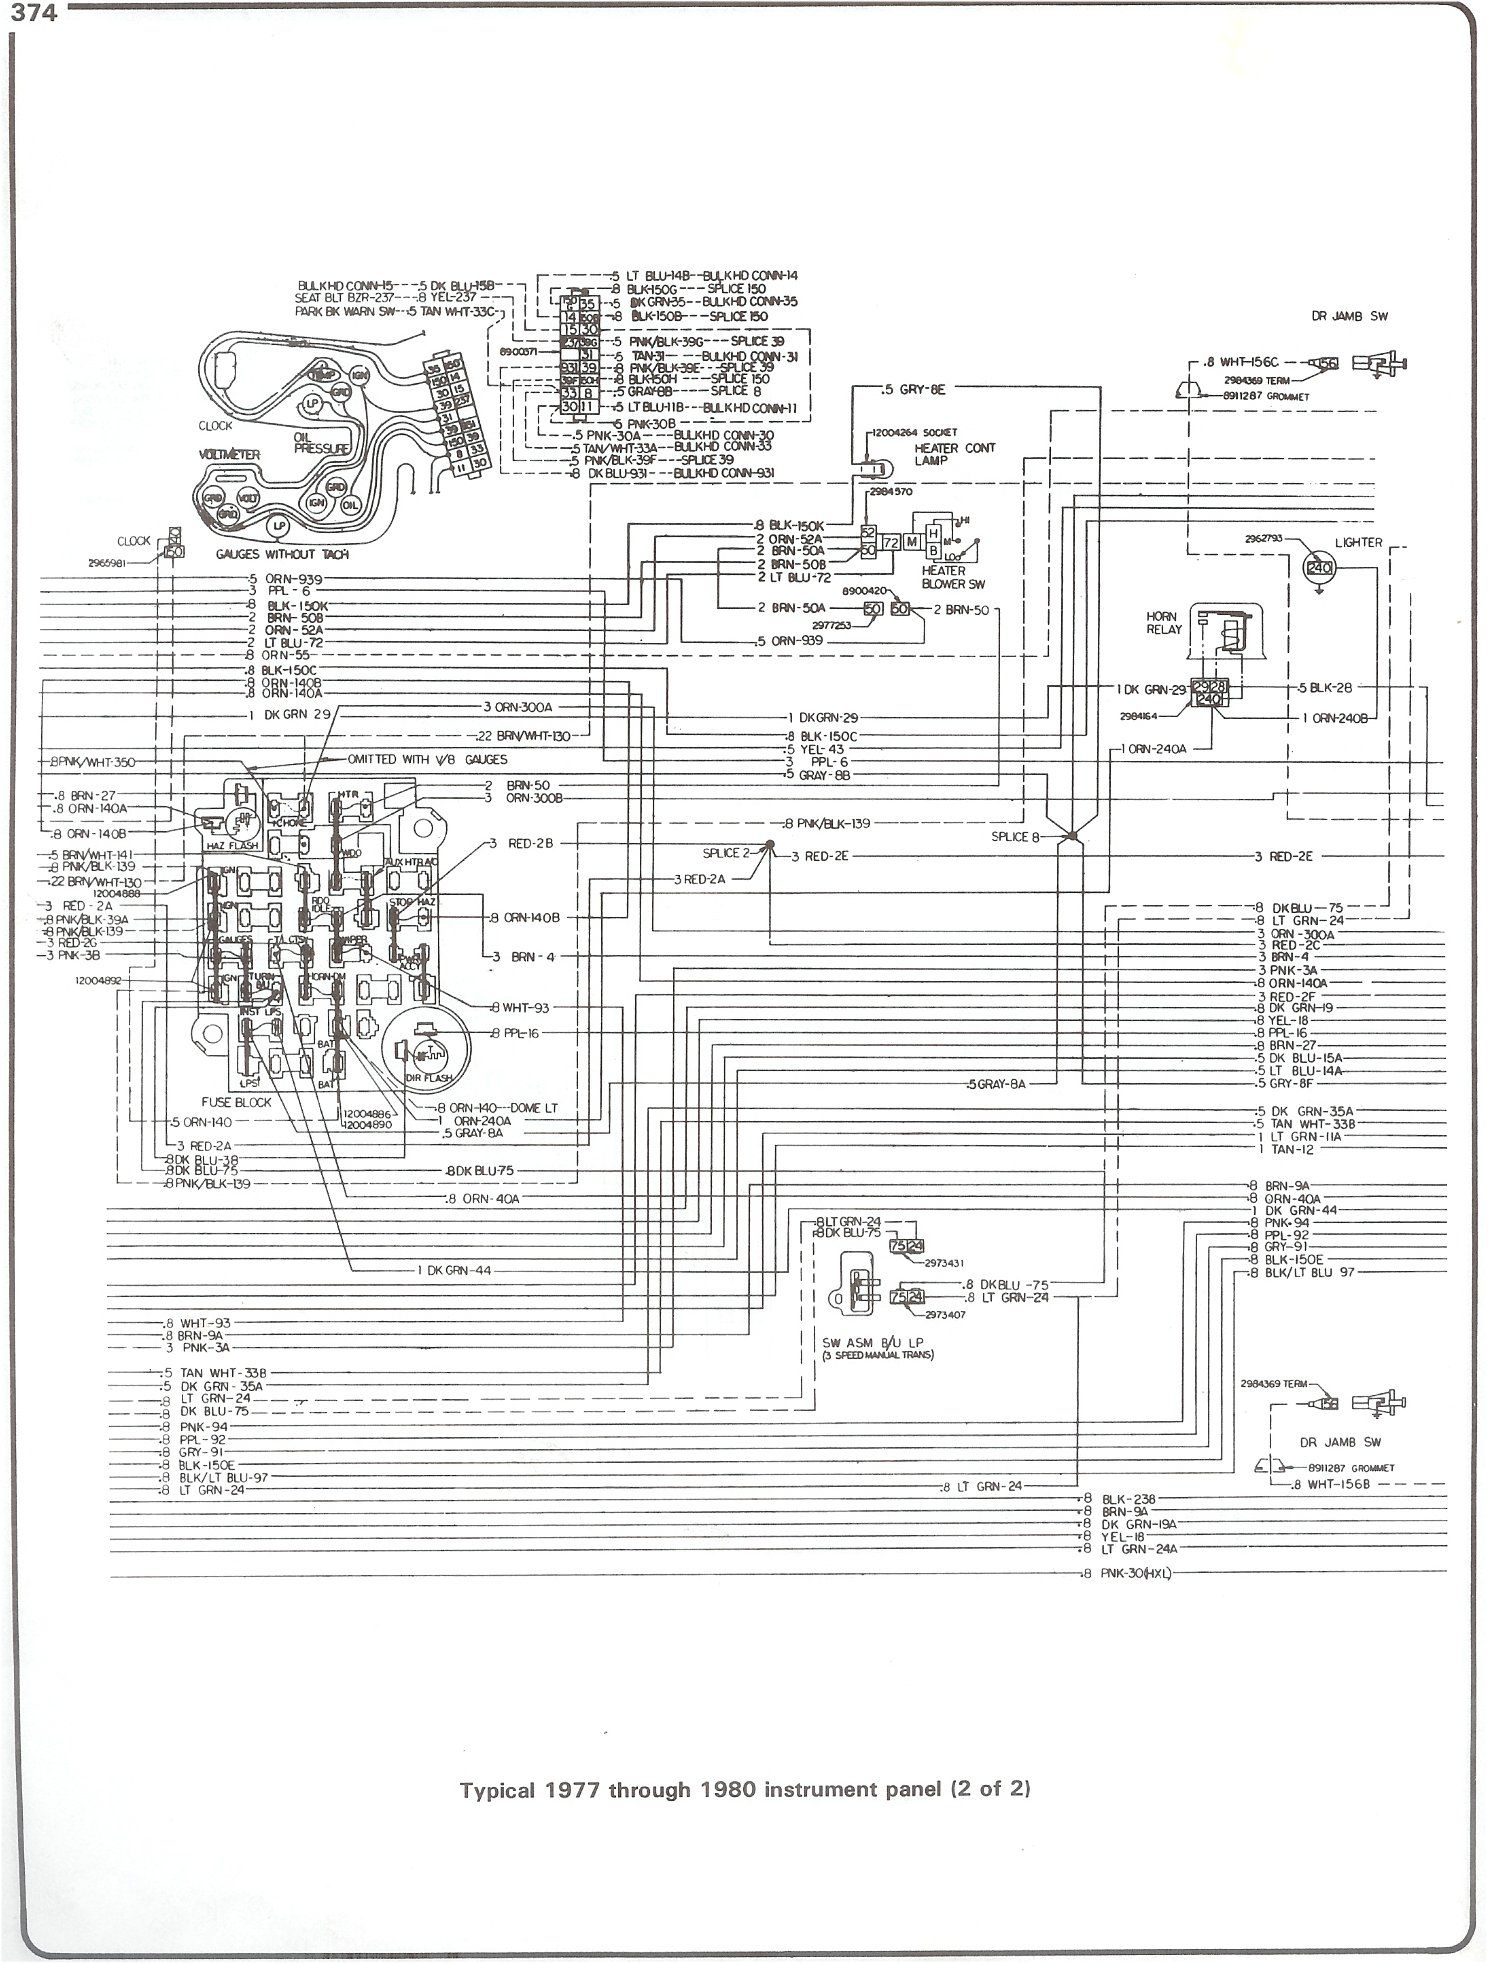 hight resolution of instrument panel of 1981 chevy c10 fuse box wiring diagram with heater blower and fuse block or dimmer flasher wiring diagram